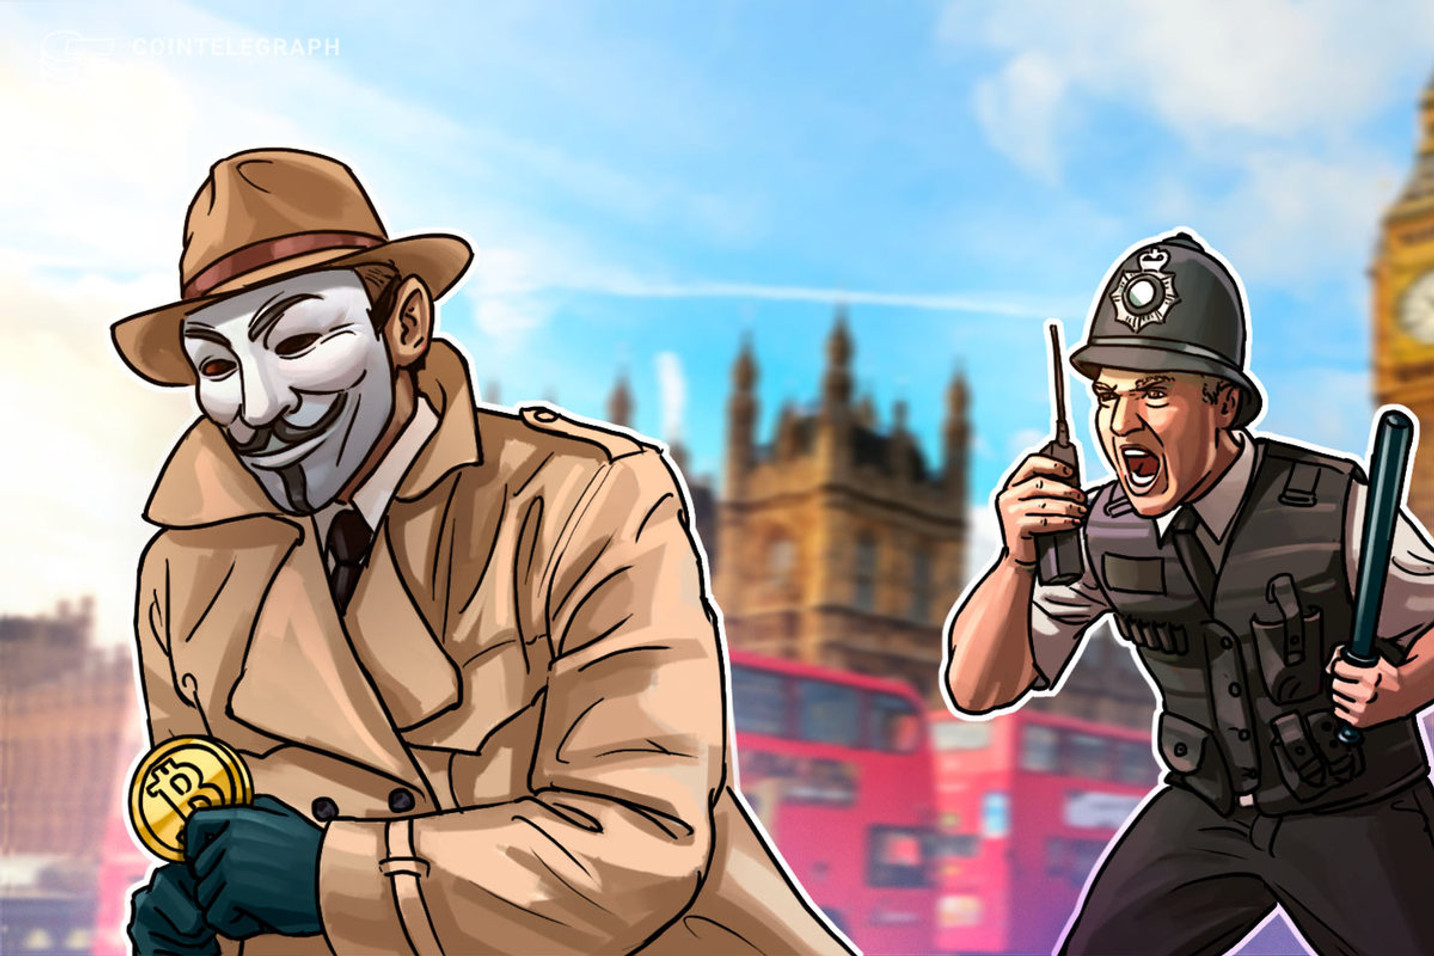 UK Police Reports 562 Cases of Bitcoin-Related Blackmail Over Last Two Years